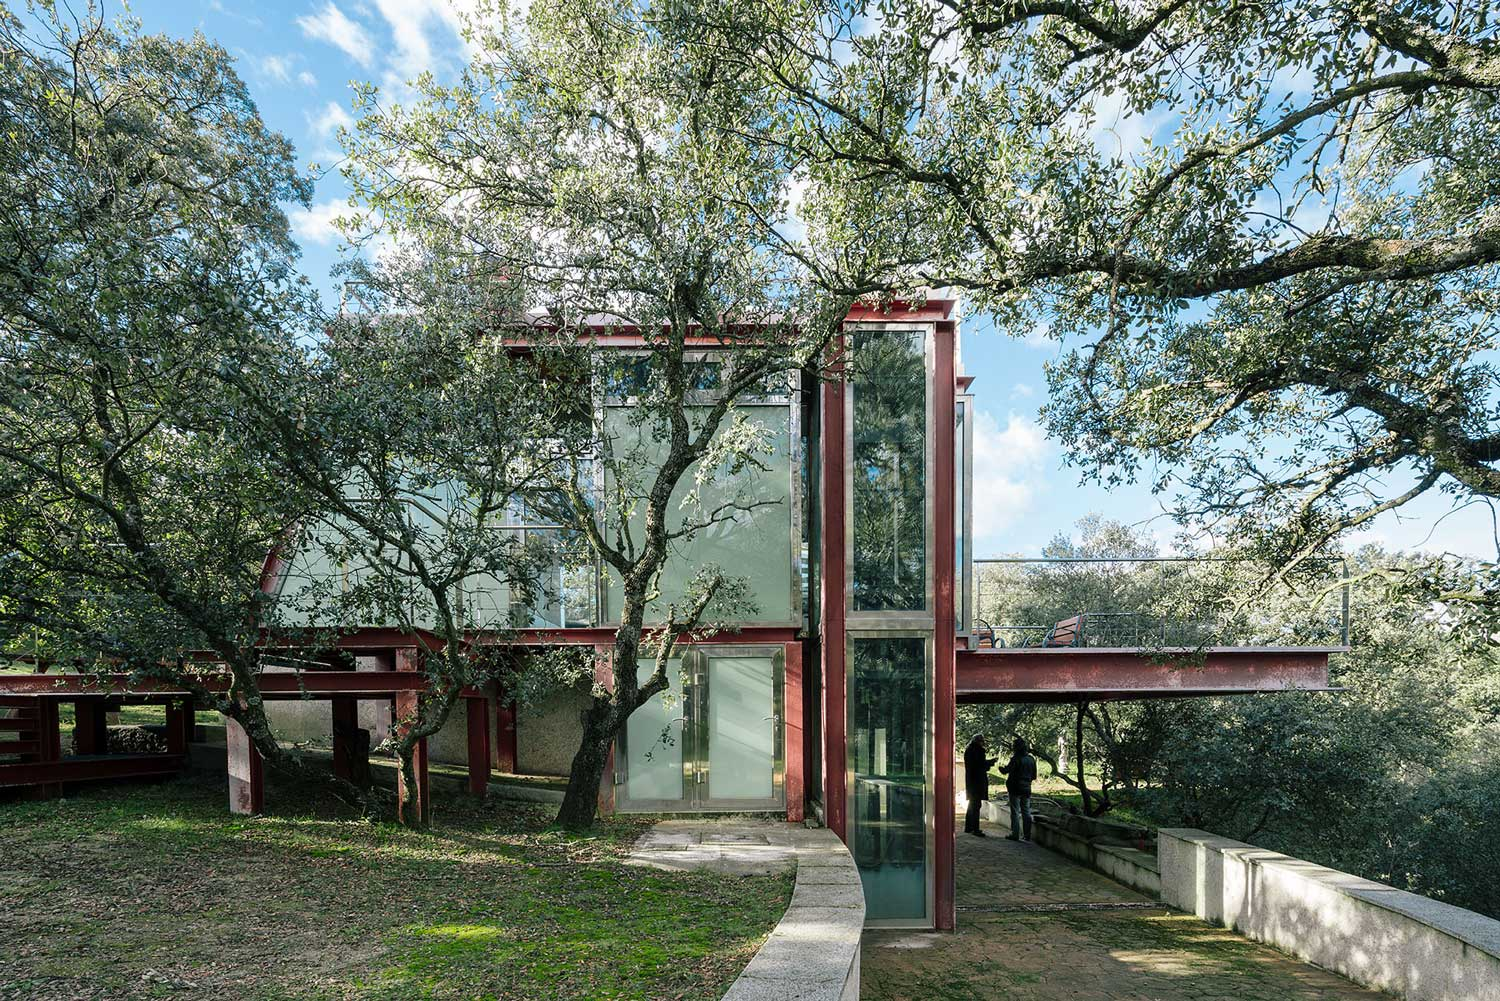 The hidden pavilion in madrid spain by penelas architects yellowtrace - Glass house show ...